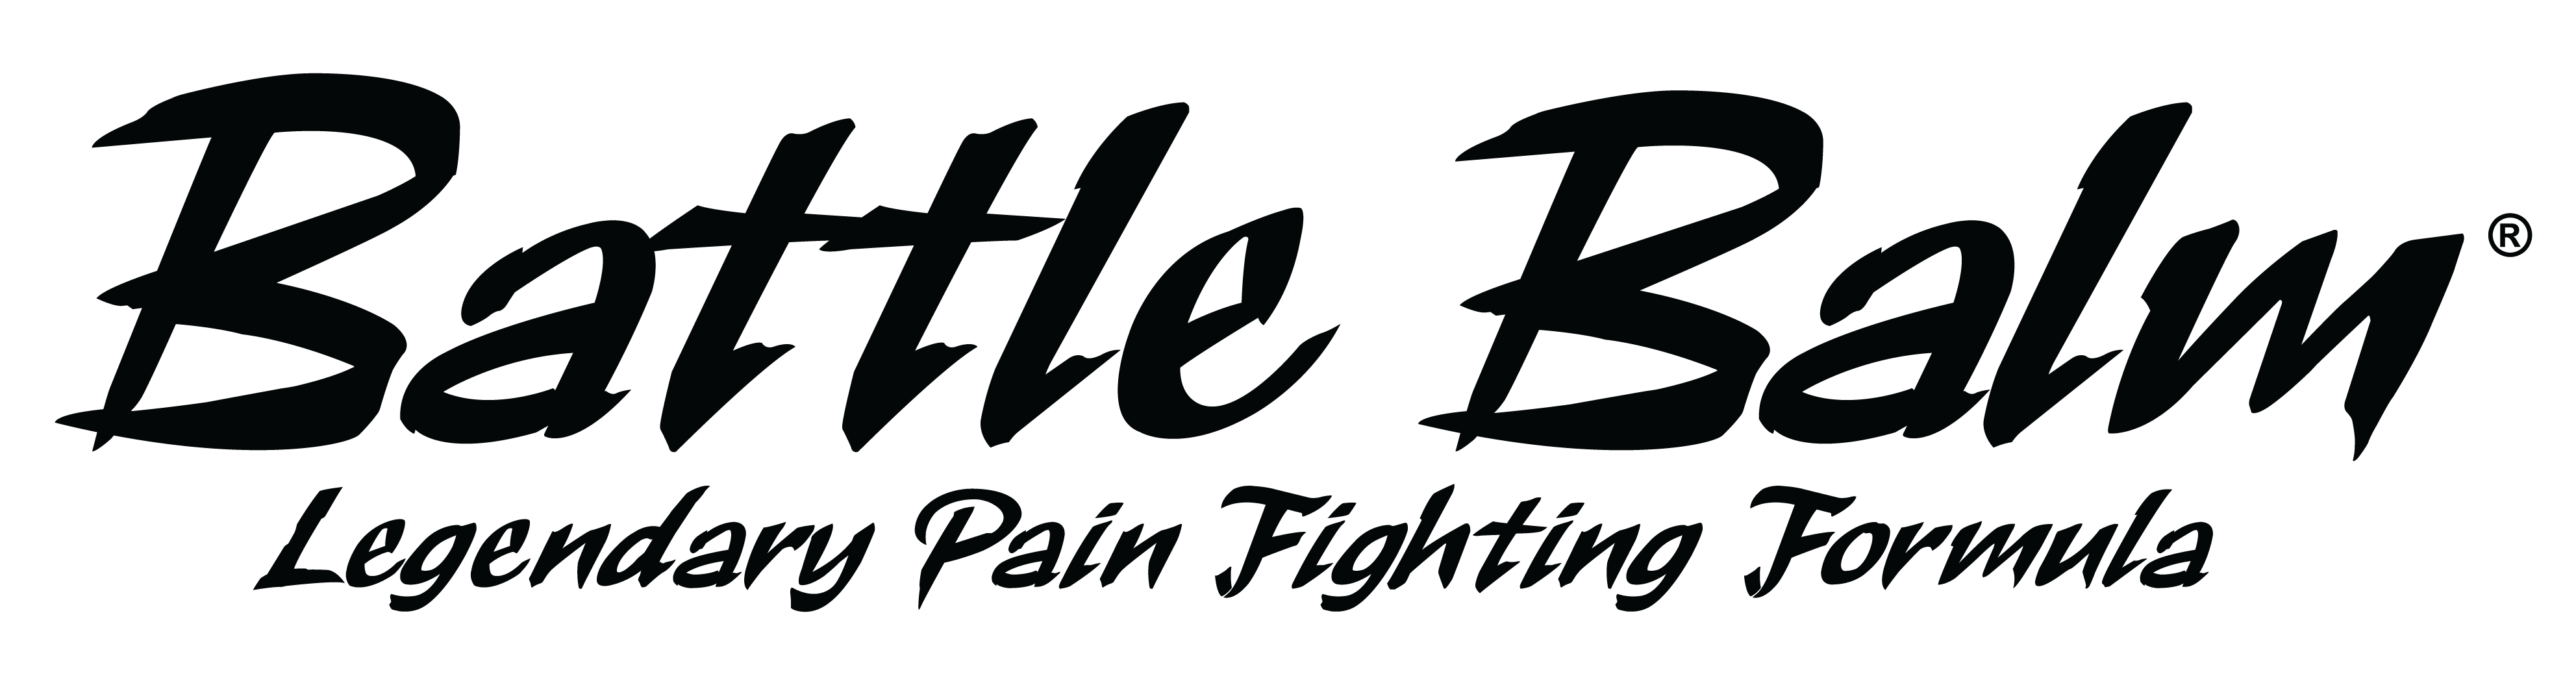 Meet Battle Balm, the Revolutionary Natural & Organic Topical Pain Reliever Based Entirely on Plants